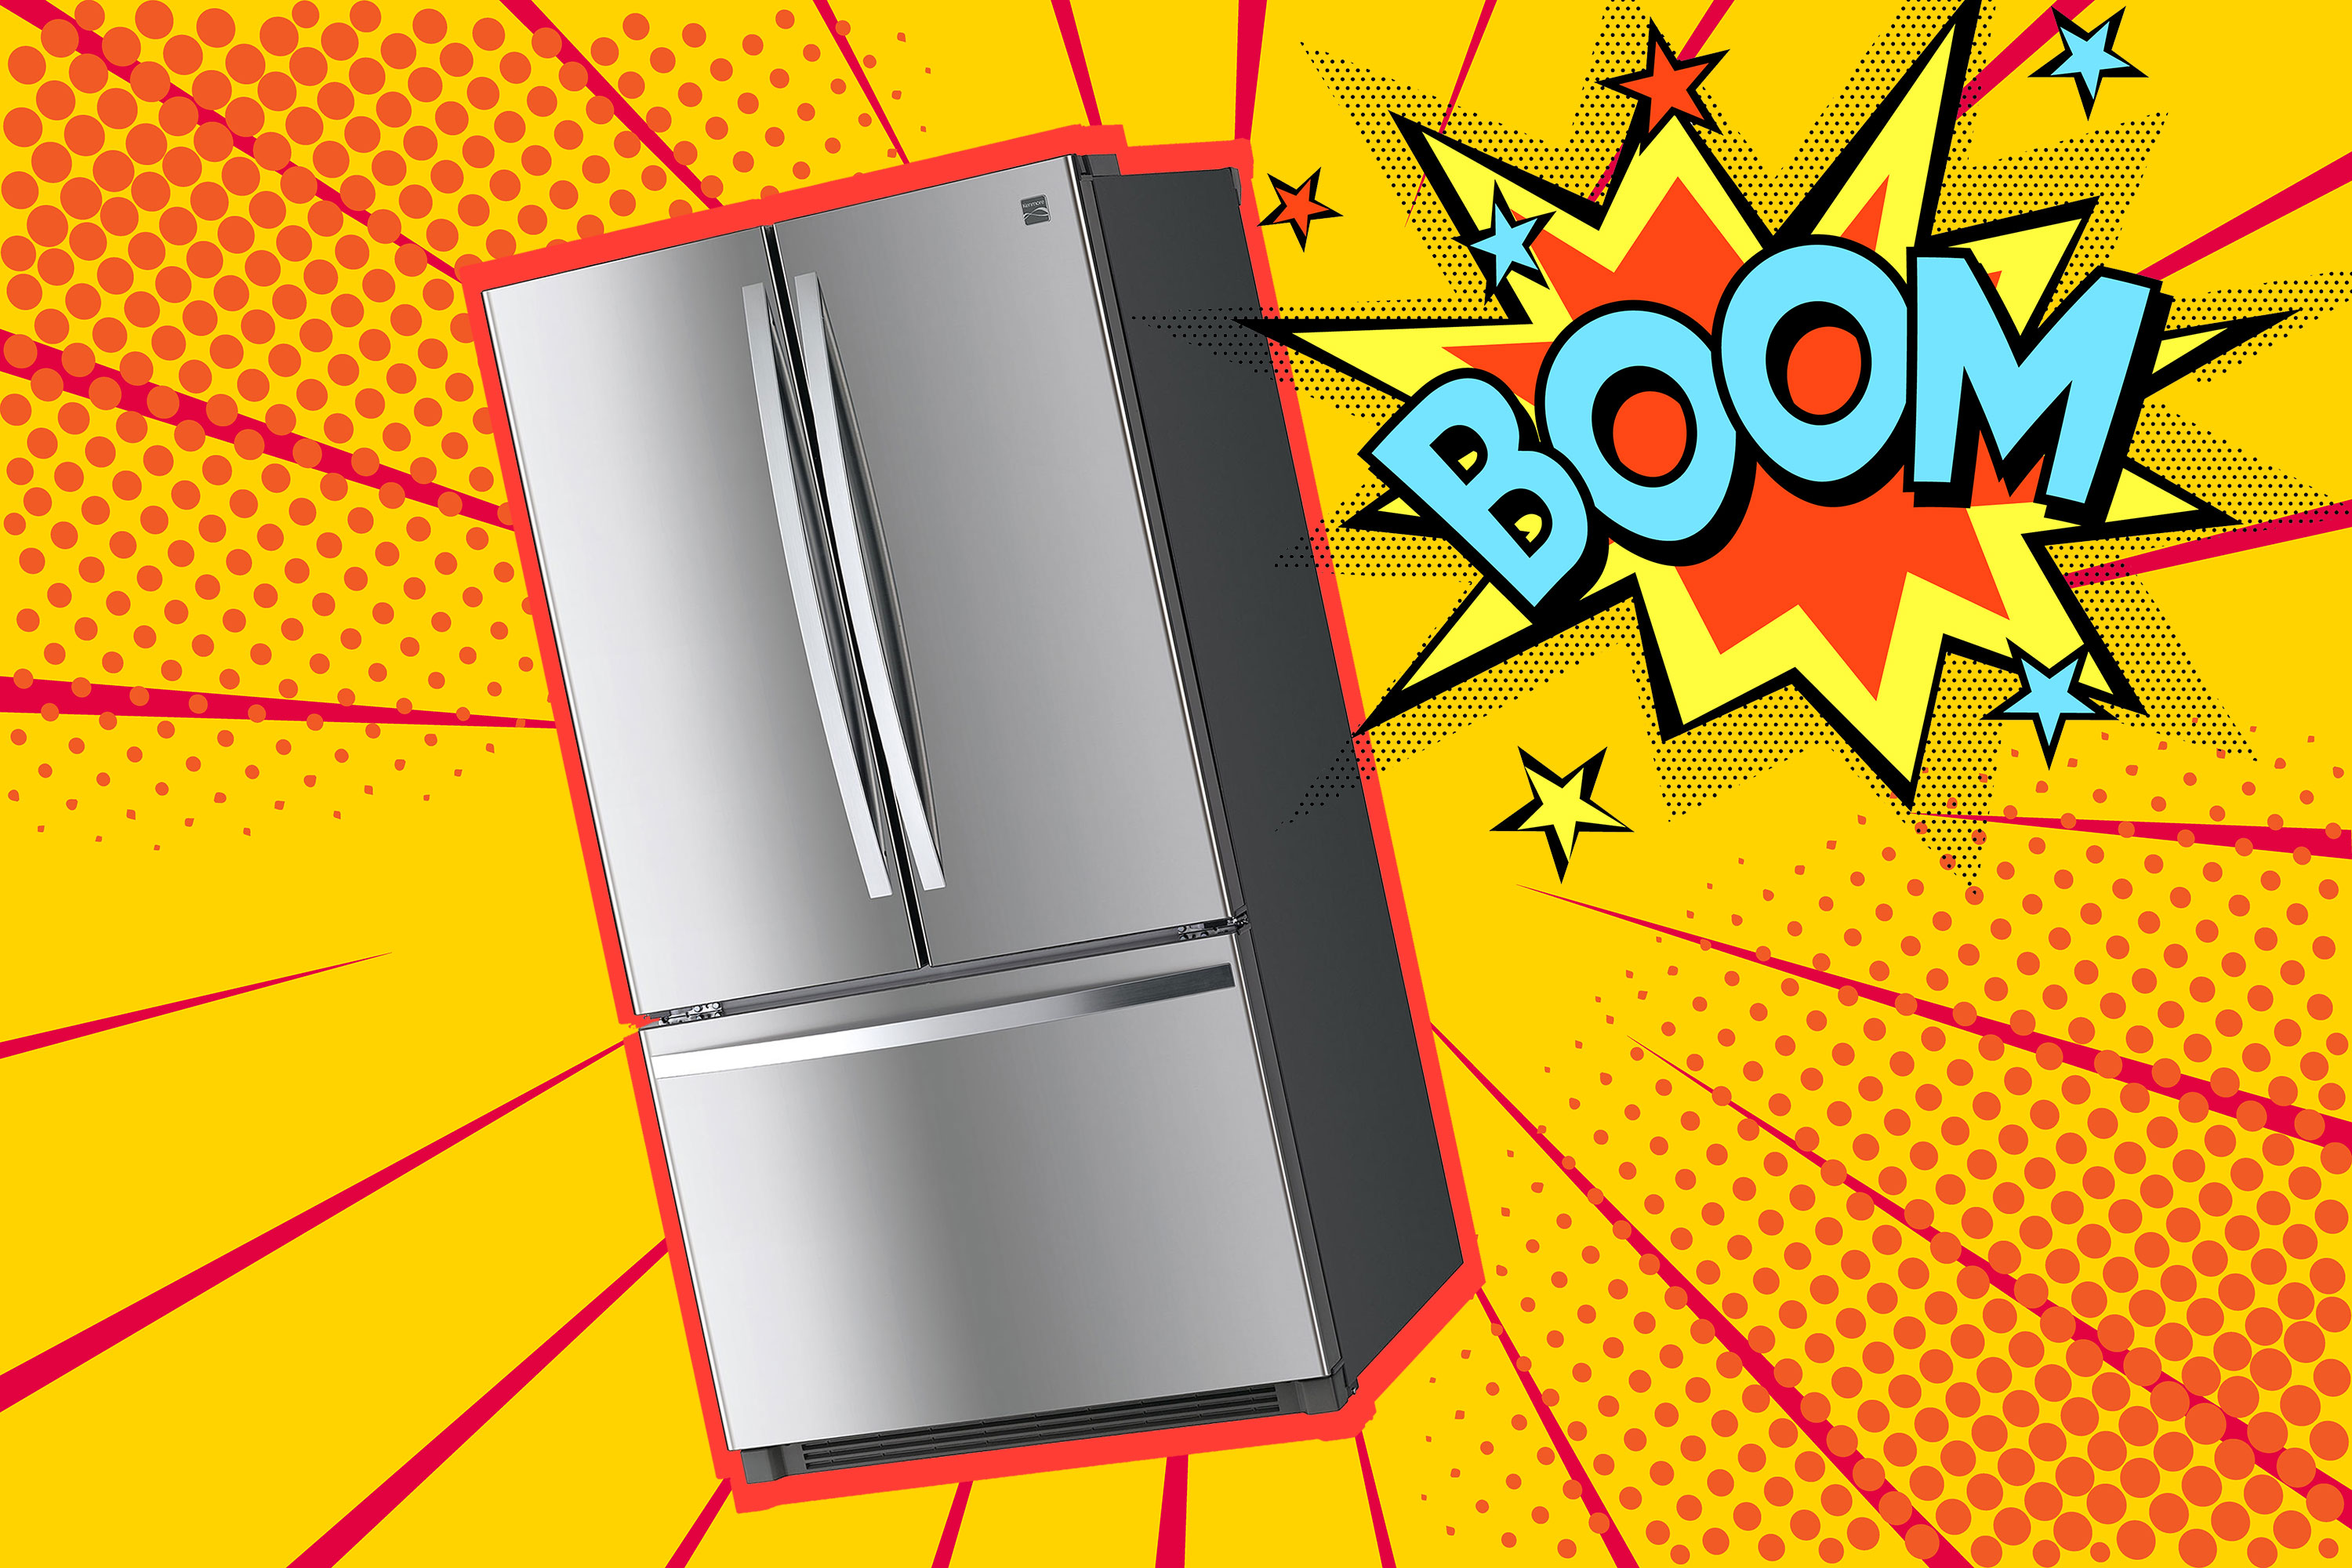 How Does a Refrigerator Explosion Occur? - Cooking Light